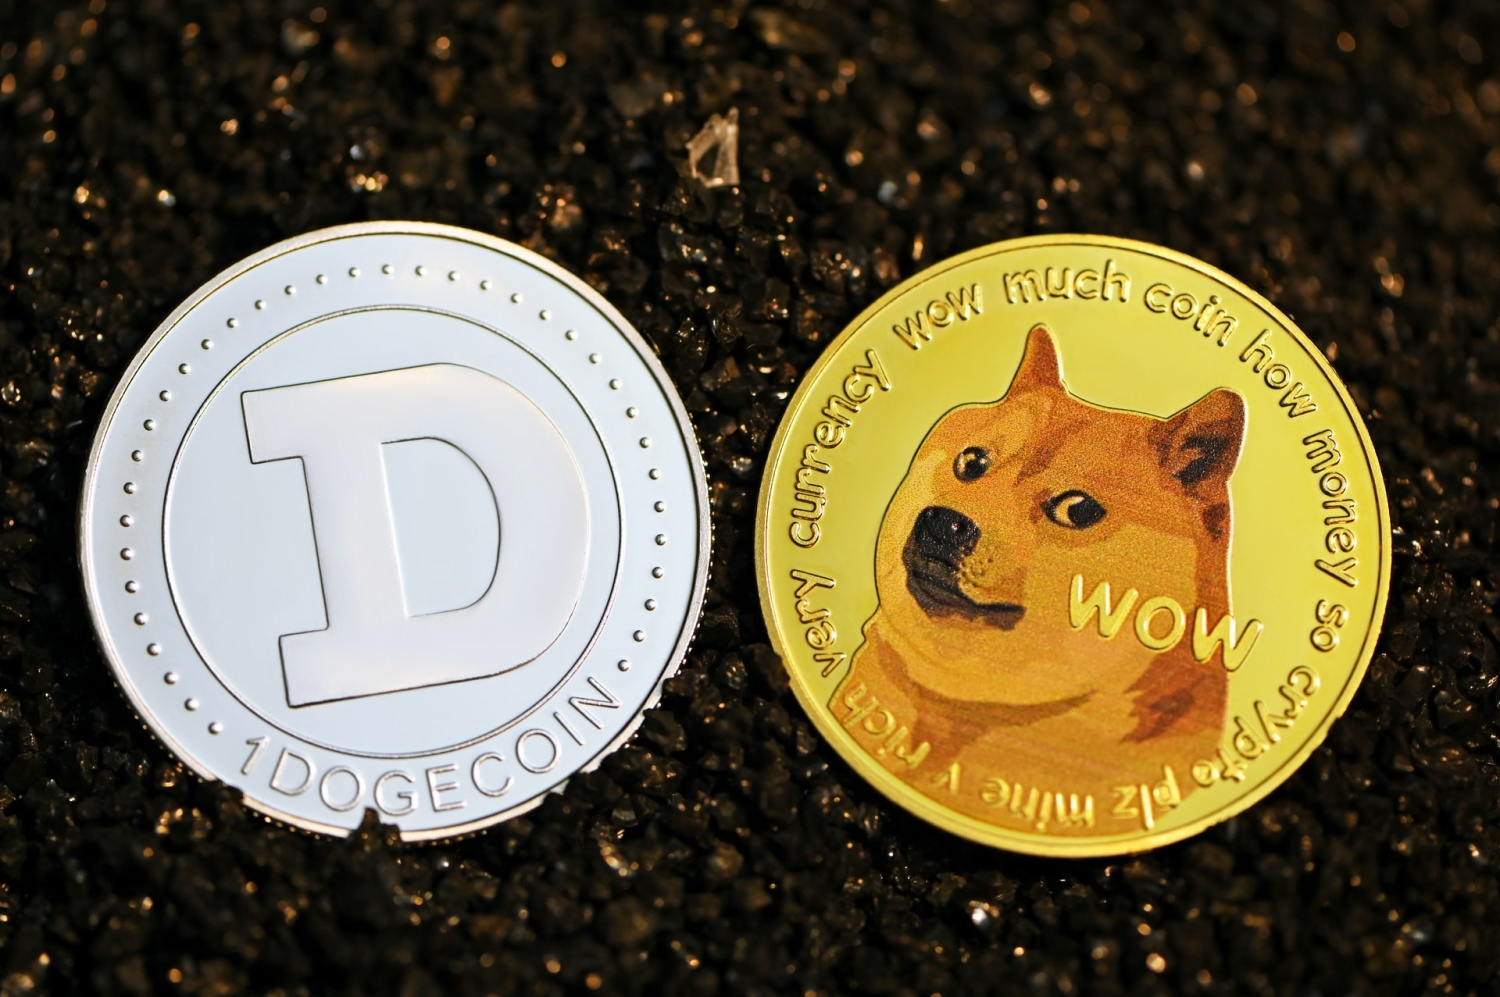 Dogecoin Investment Is a Joke: Analyst Warns Meme Coin Is Bad for Cryptocurrency